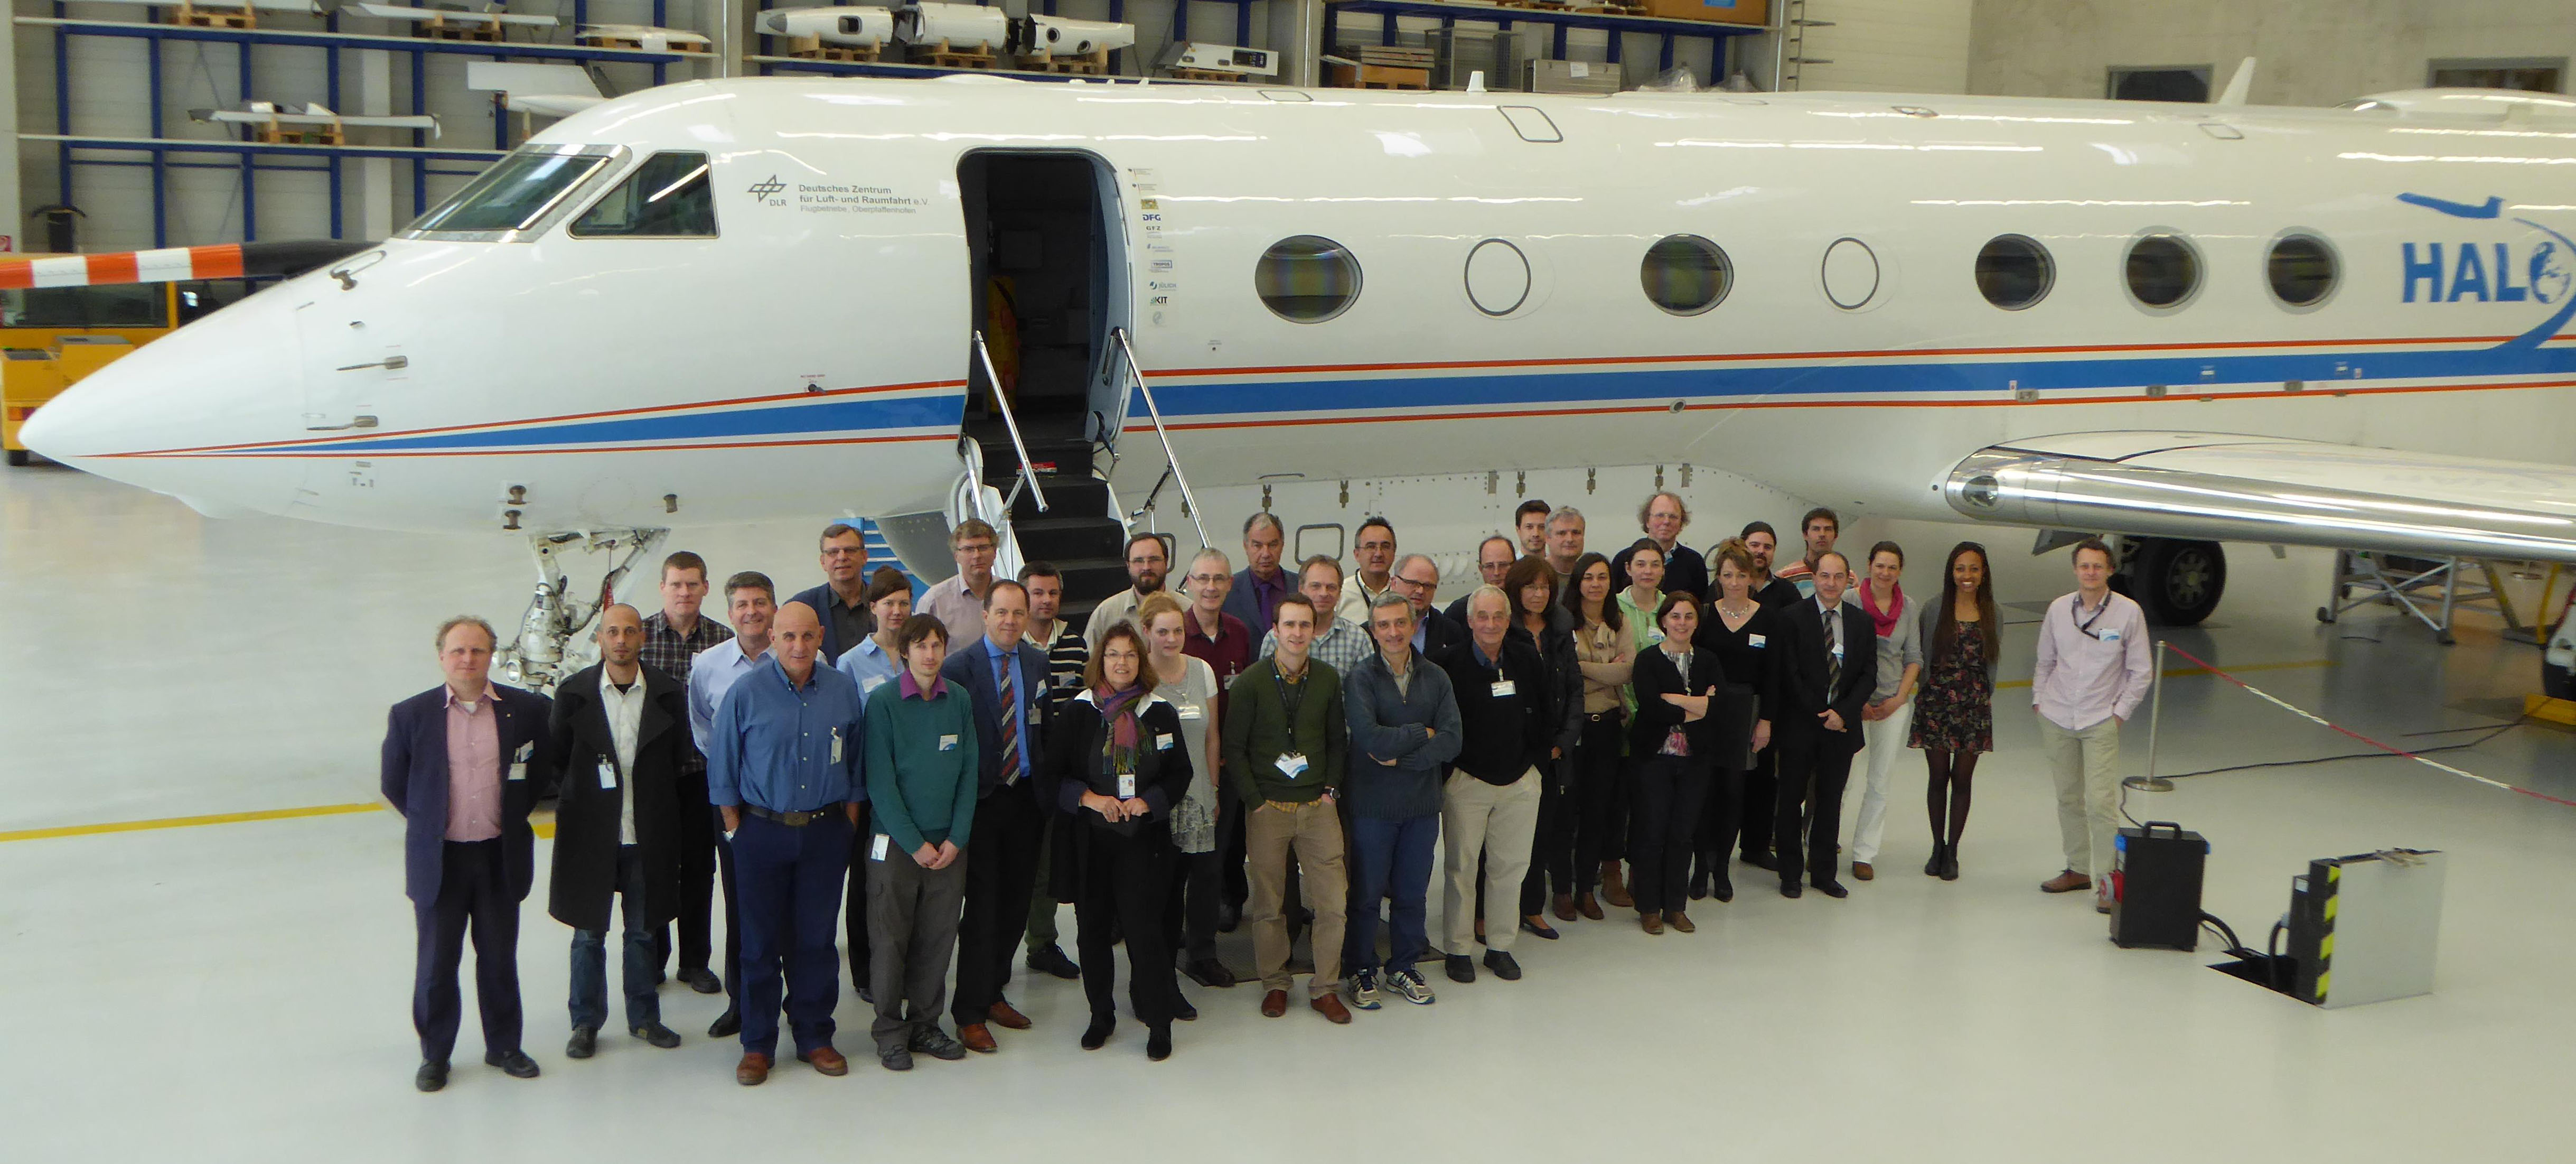 Group photo in front of DRL's HALO research aircraft during the 2nd EUFAR2 General Assembly meeting, at DLR, Oberpfaffenhofen (March 2015). Copyright EUFAR.